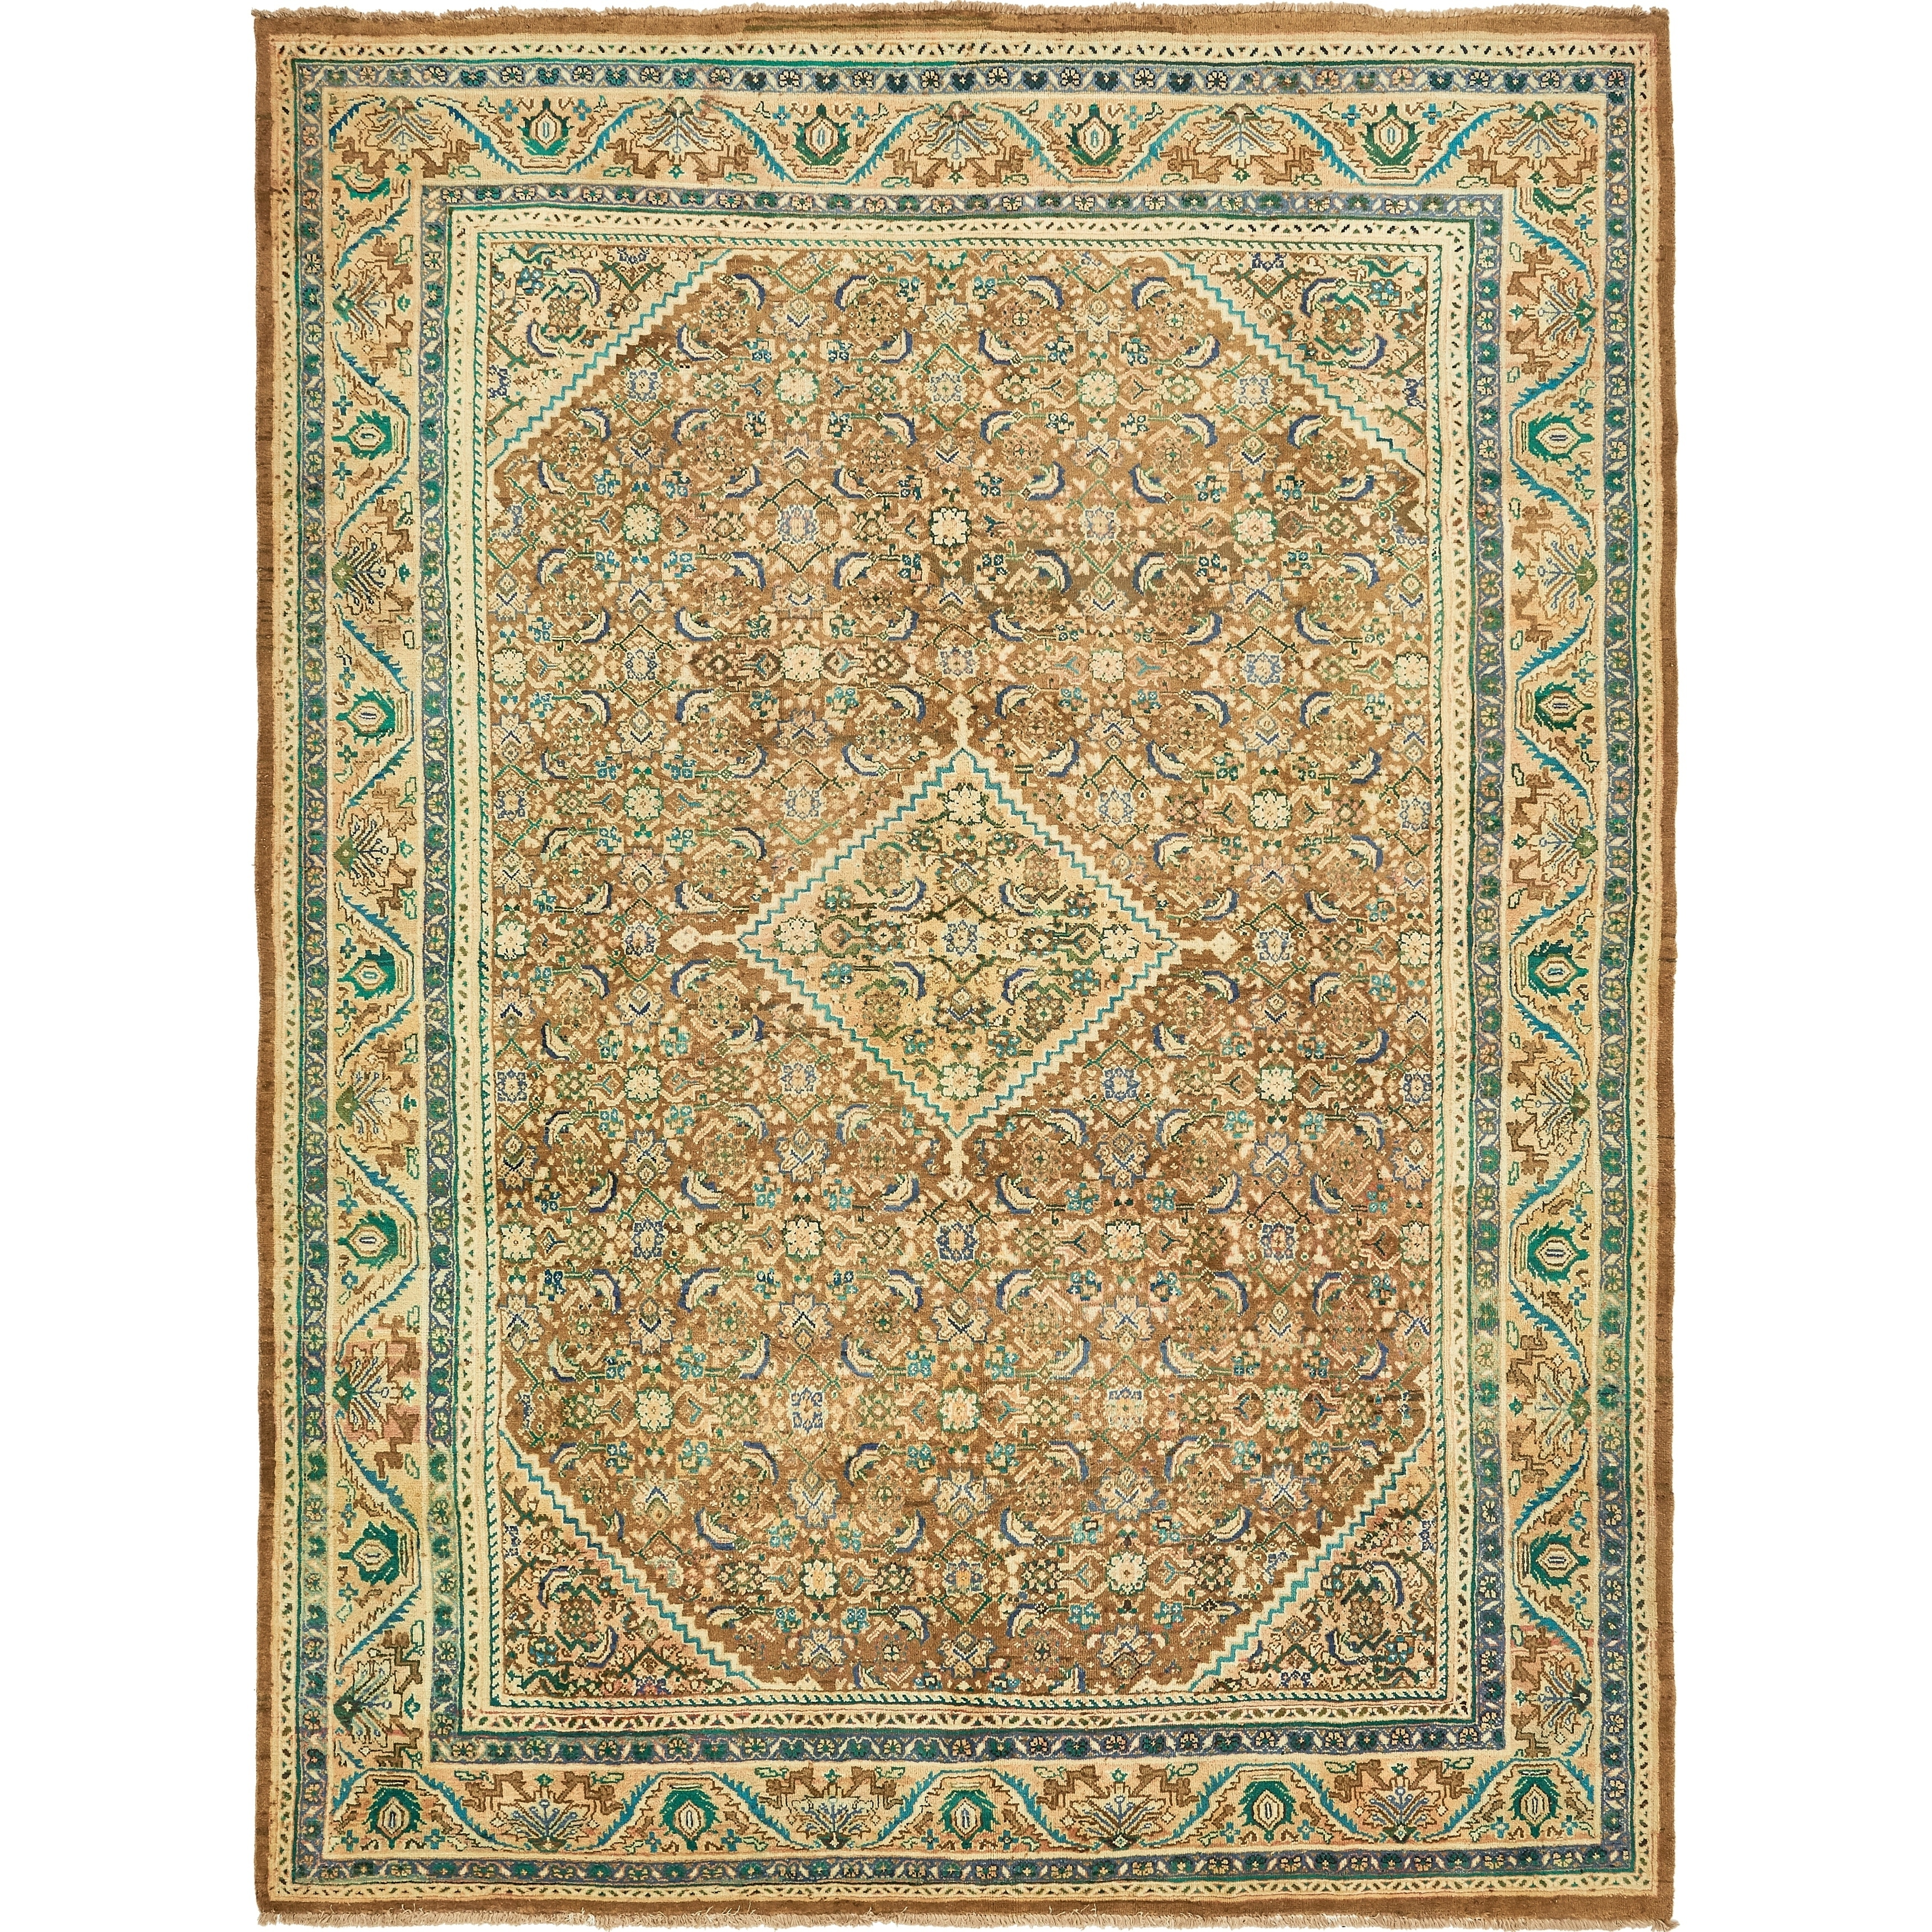 Shop Hand Knotted Farahan Semi Antique Wool Area Rug 9 11 X 13 4